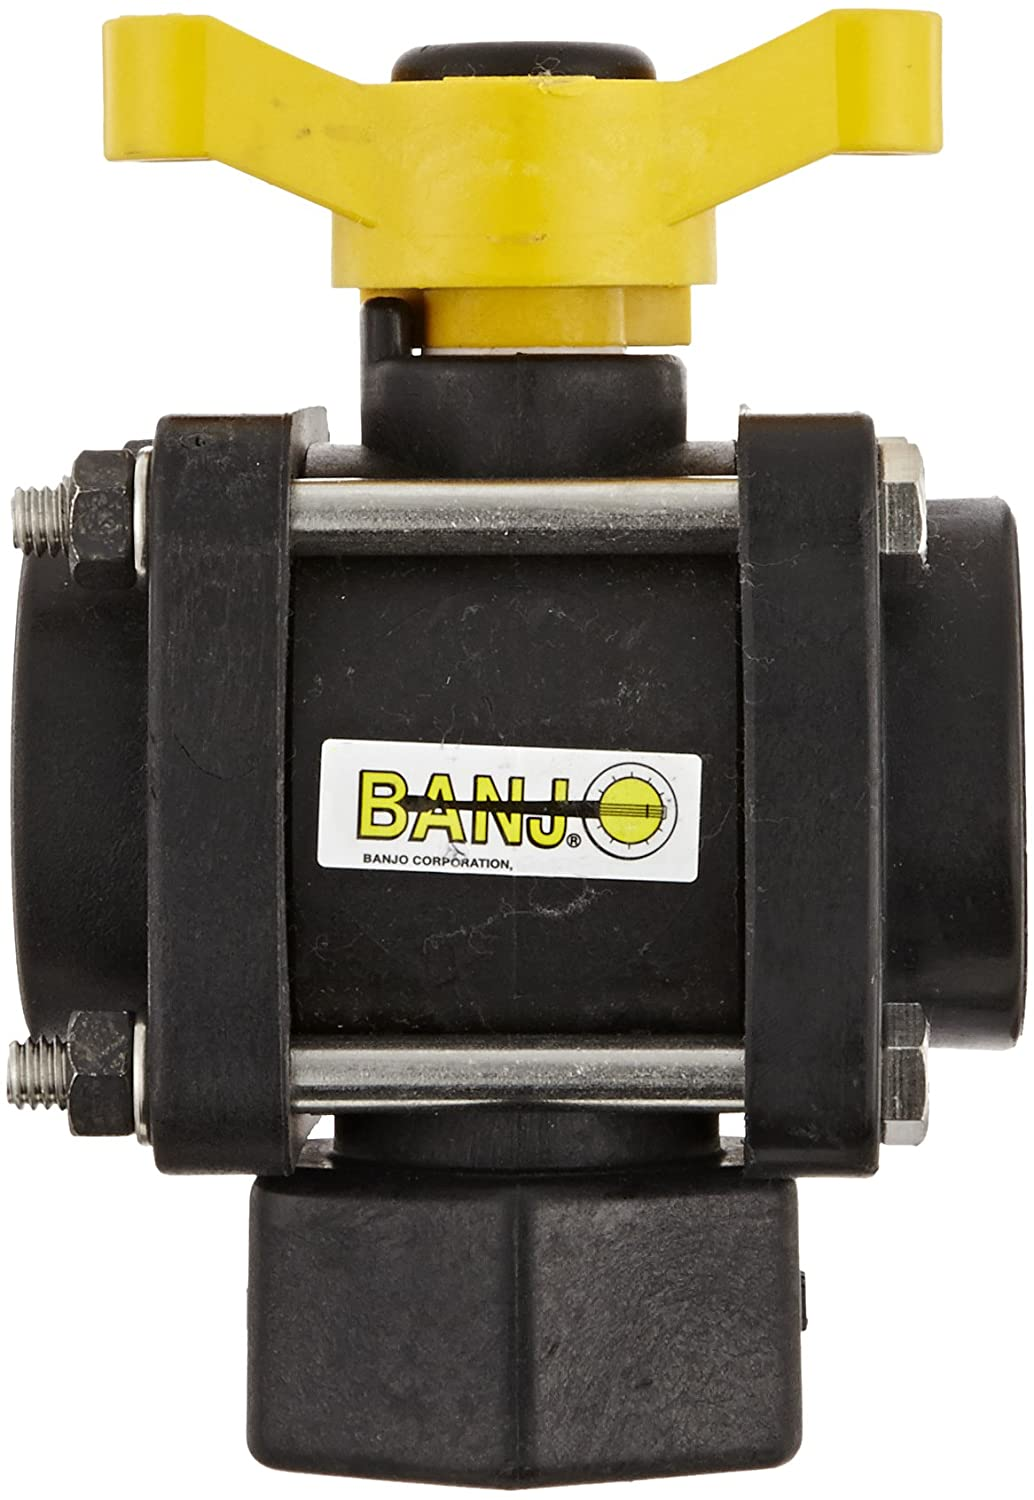 Banjo V075BL Polypropylene Bottom Load Ball Valve Three Way Full Port Three Piece 3//4 NPT Female 3//4 NPT Female Banjo Corporation